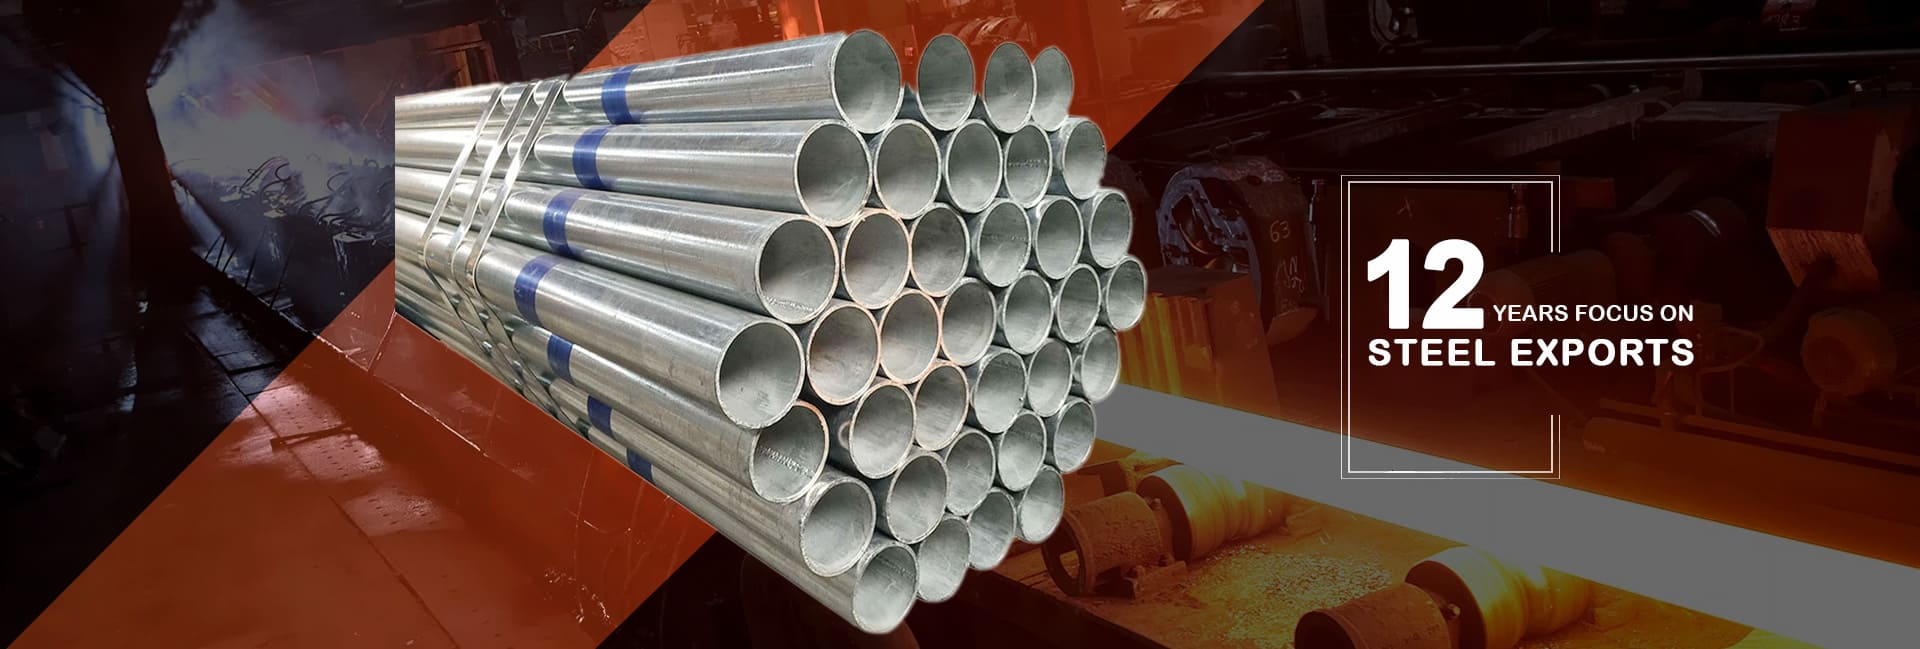 Stainless Steel 347 / 347H Tubes